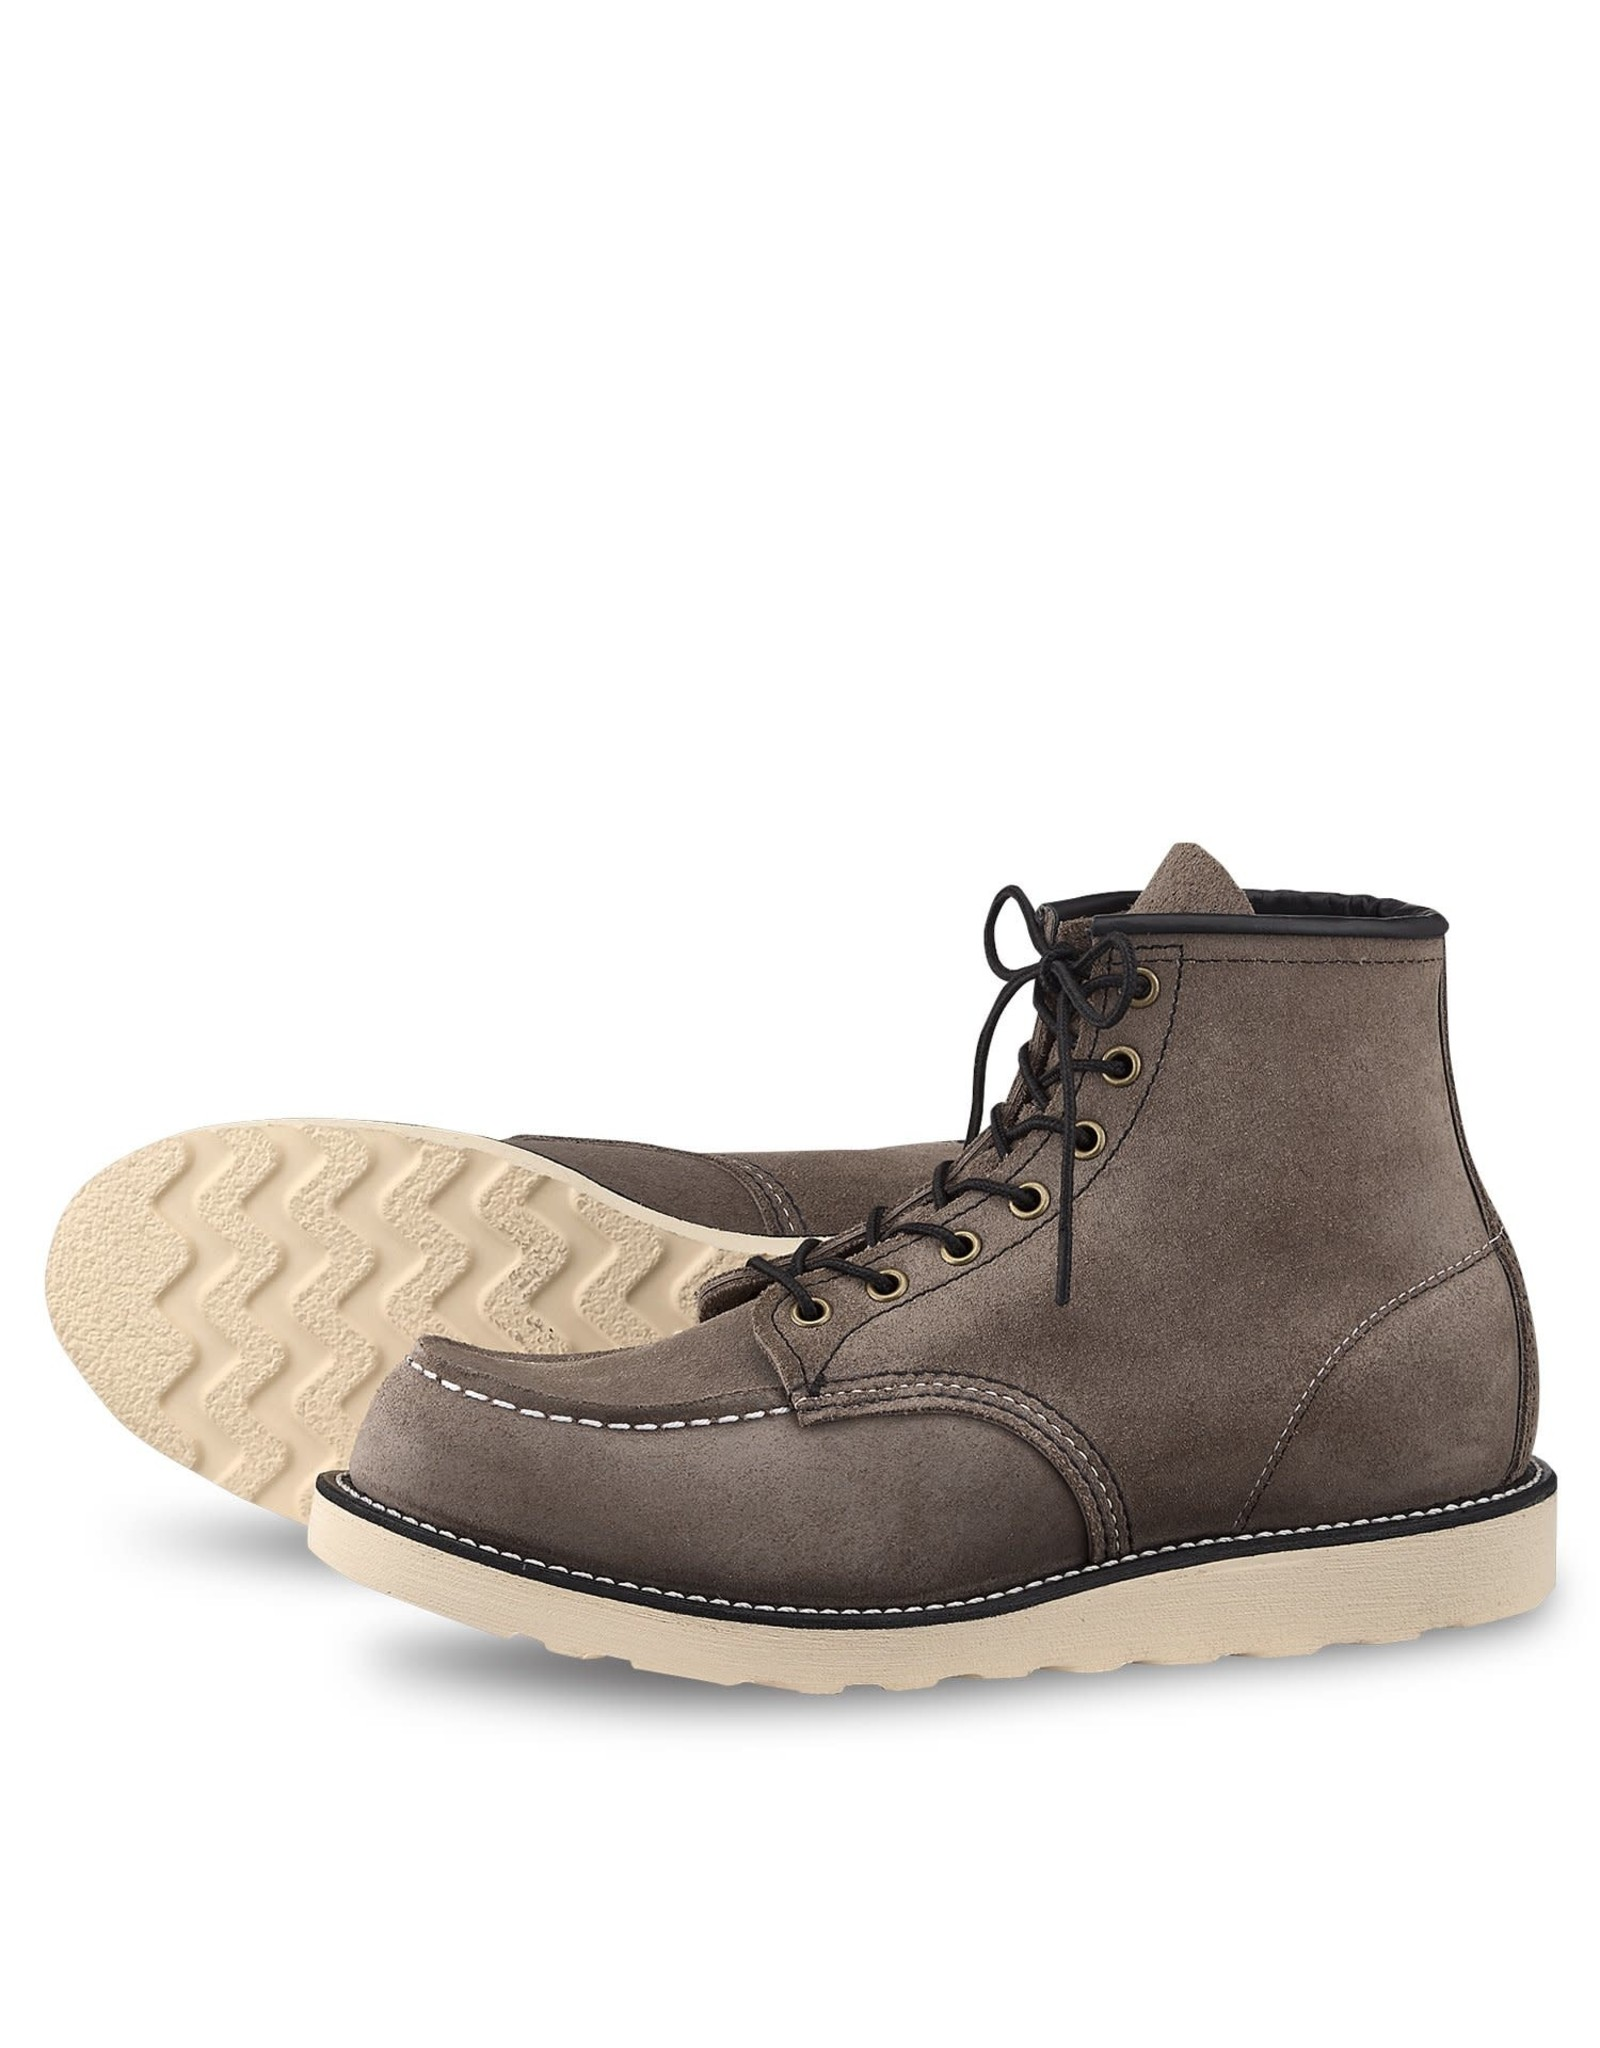 Red Wing Shoes 8863 Classic Moc Toe